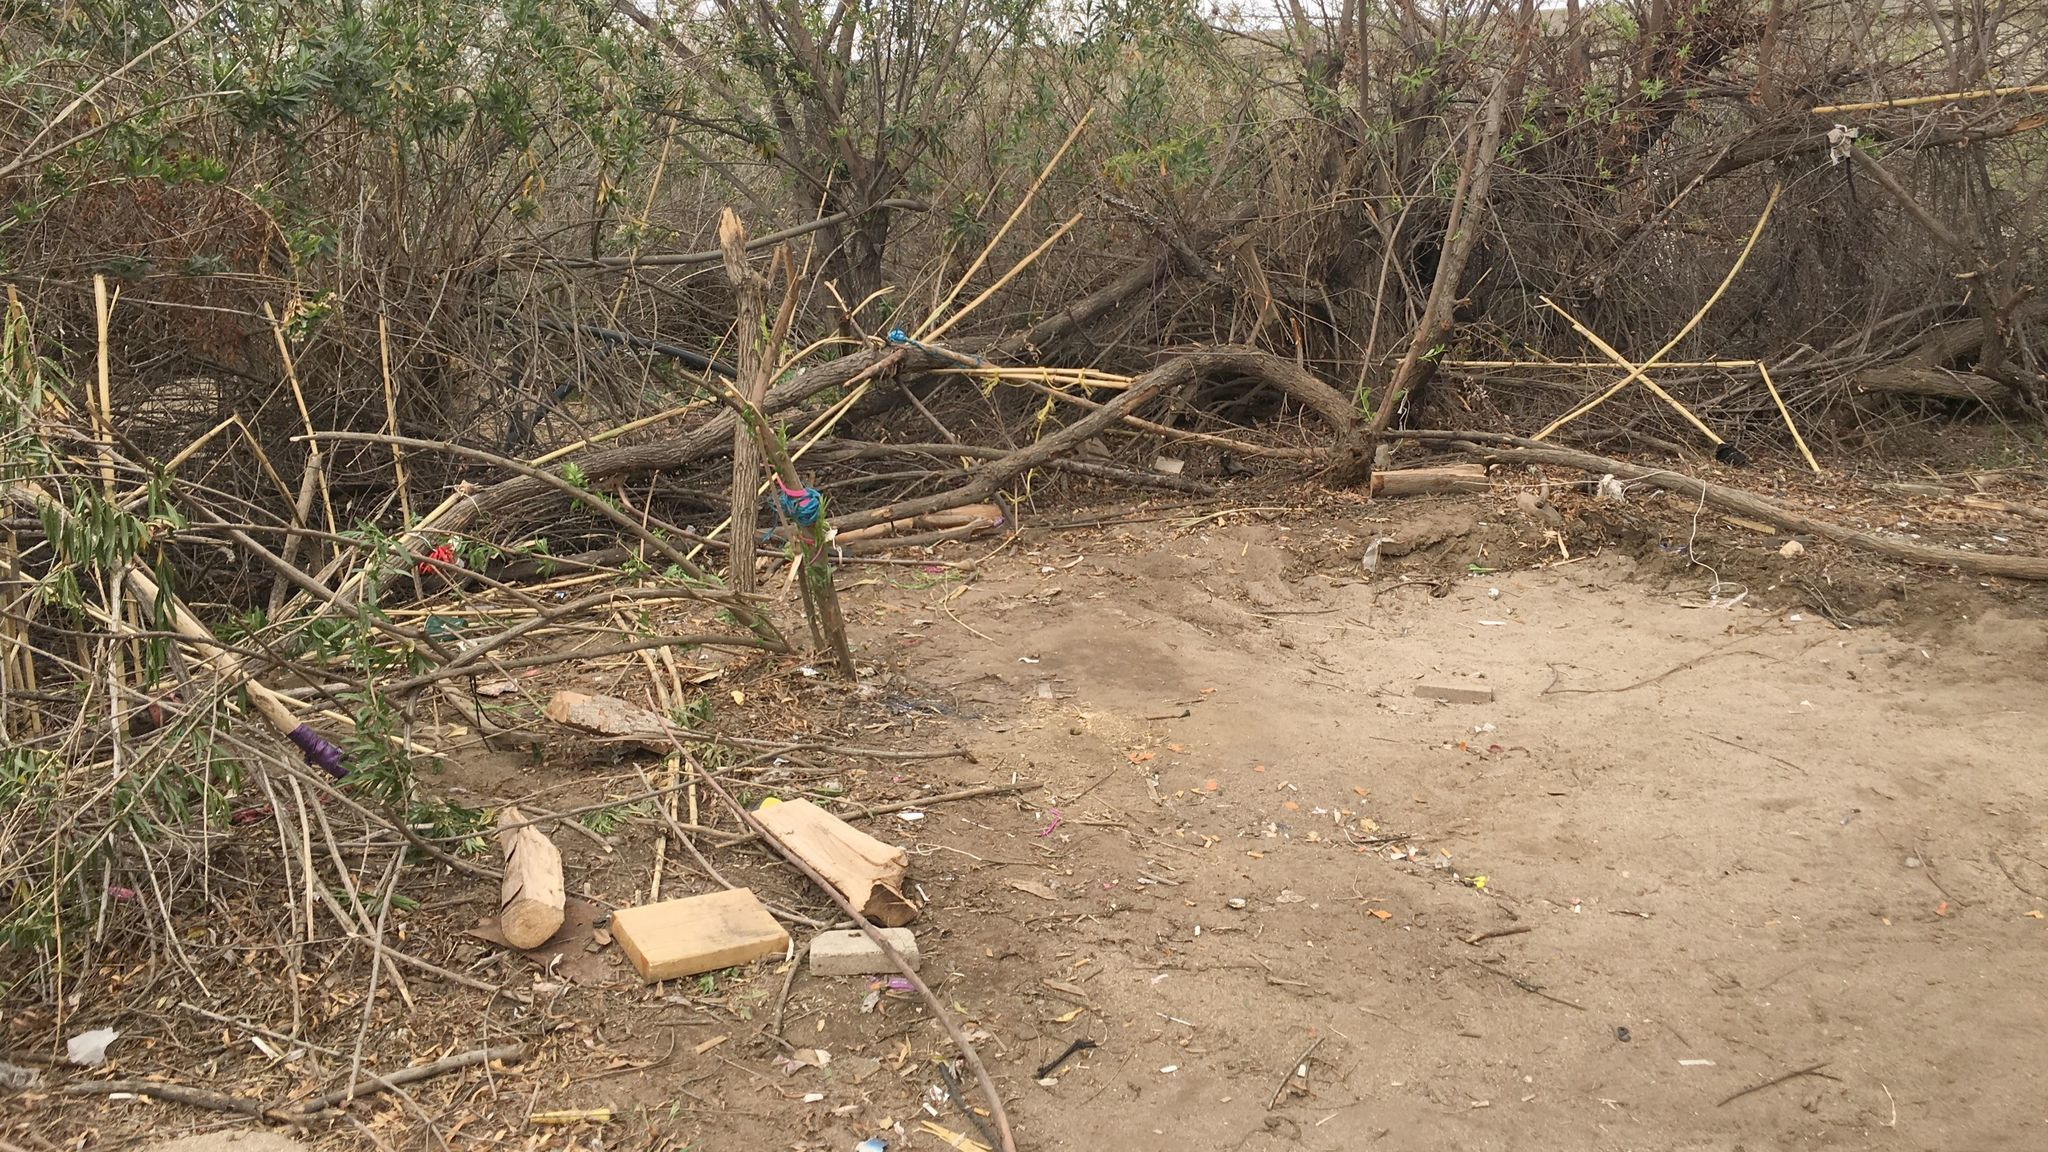 Caltrans clears Santa Maria Creek encampments after Ramona sheriff's deputies arrest nine homeless occupants during a March 8 sweep.